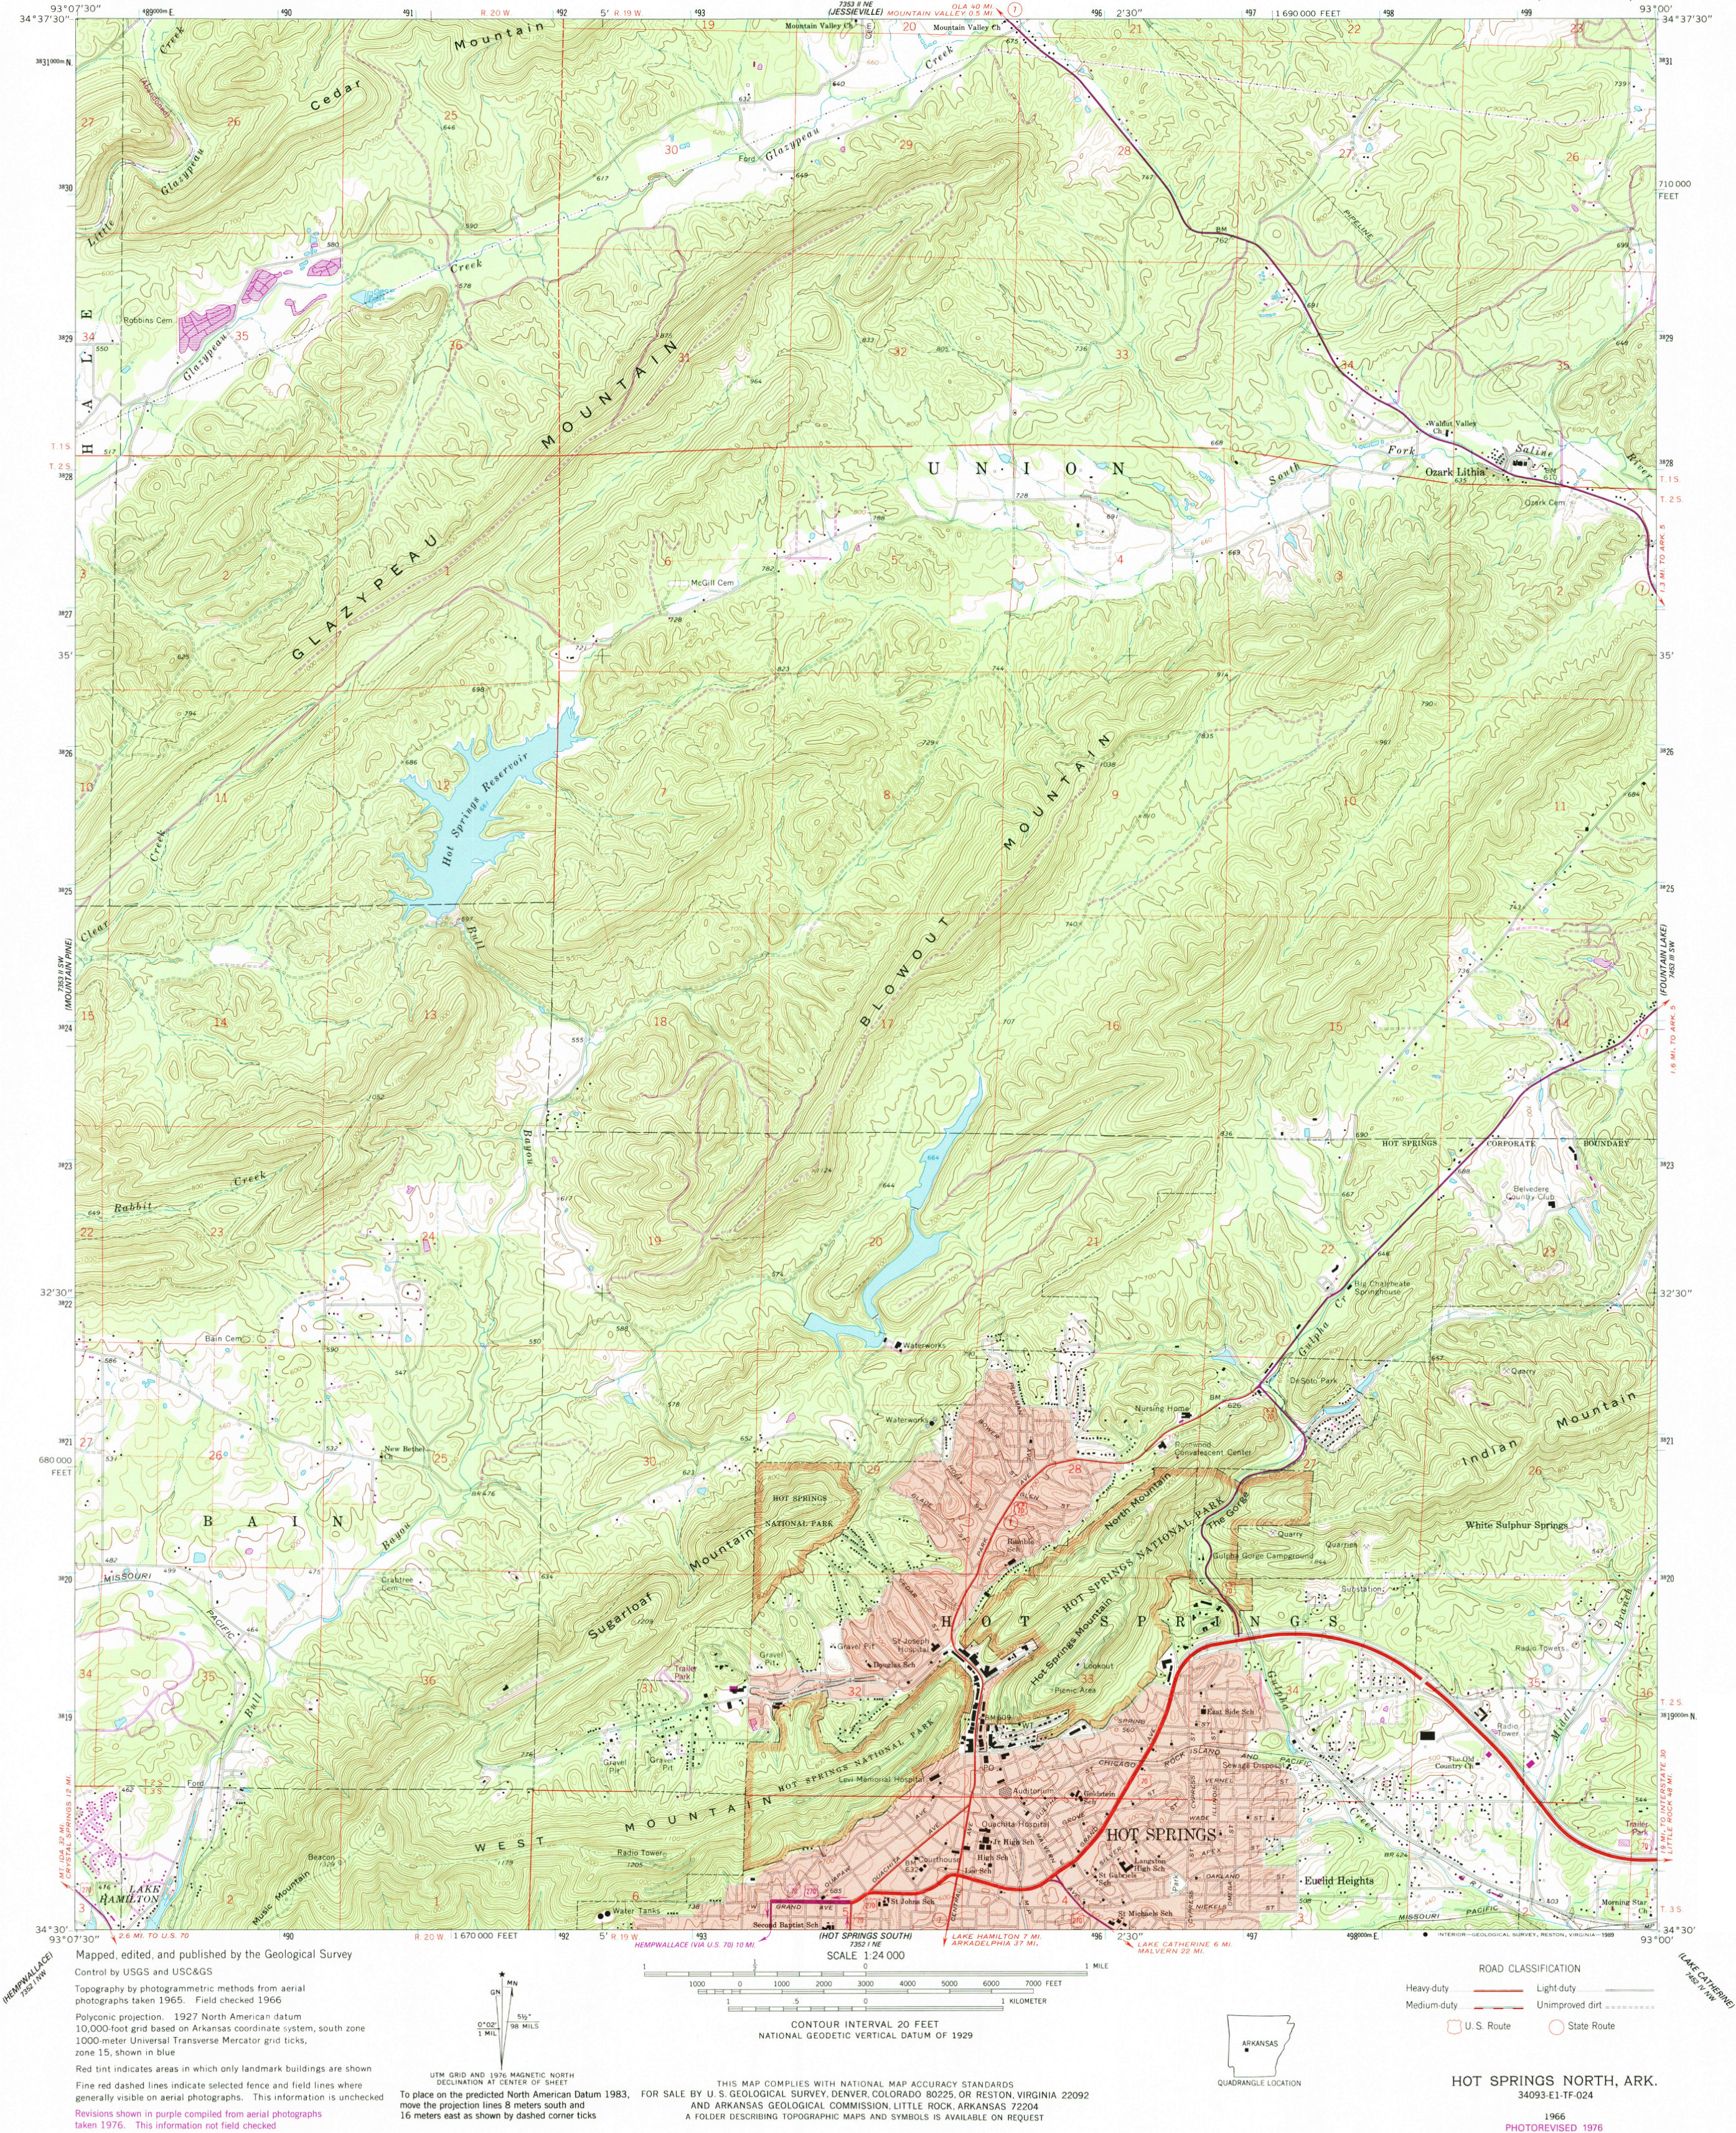 Free Arkansas Topographic Map.Hot Springs Maps Npmaps Com Just Free Maps Period